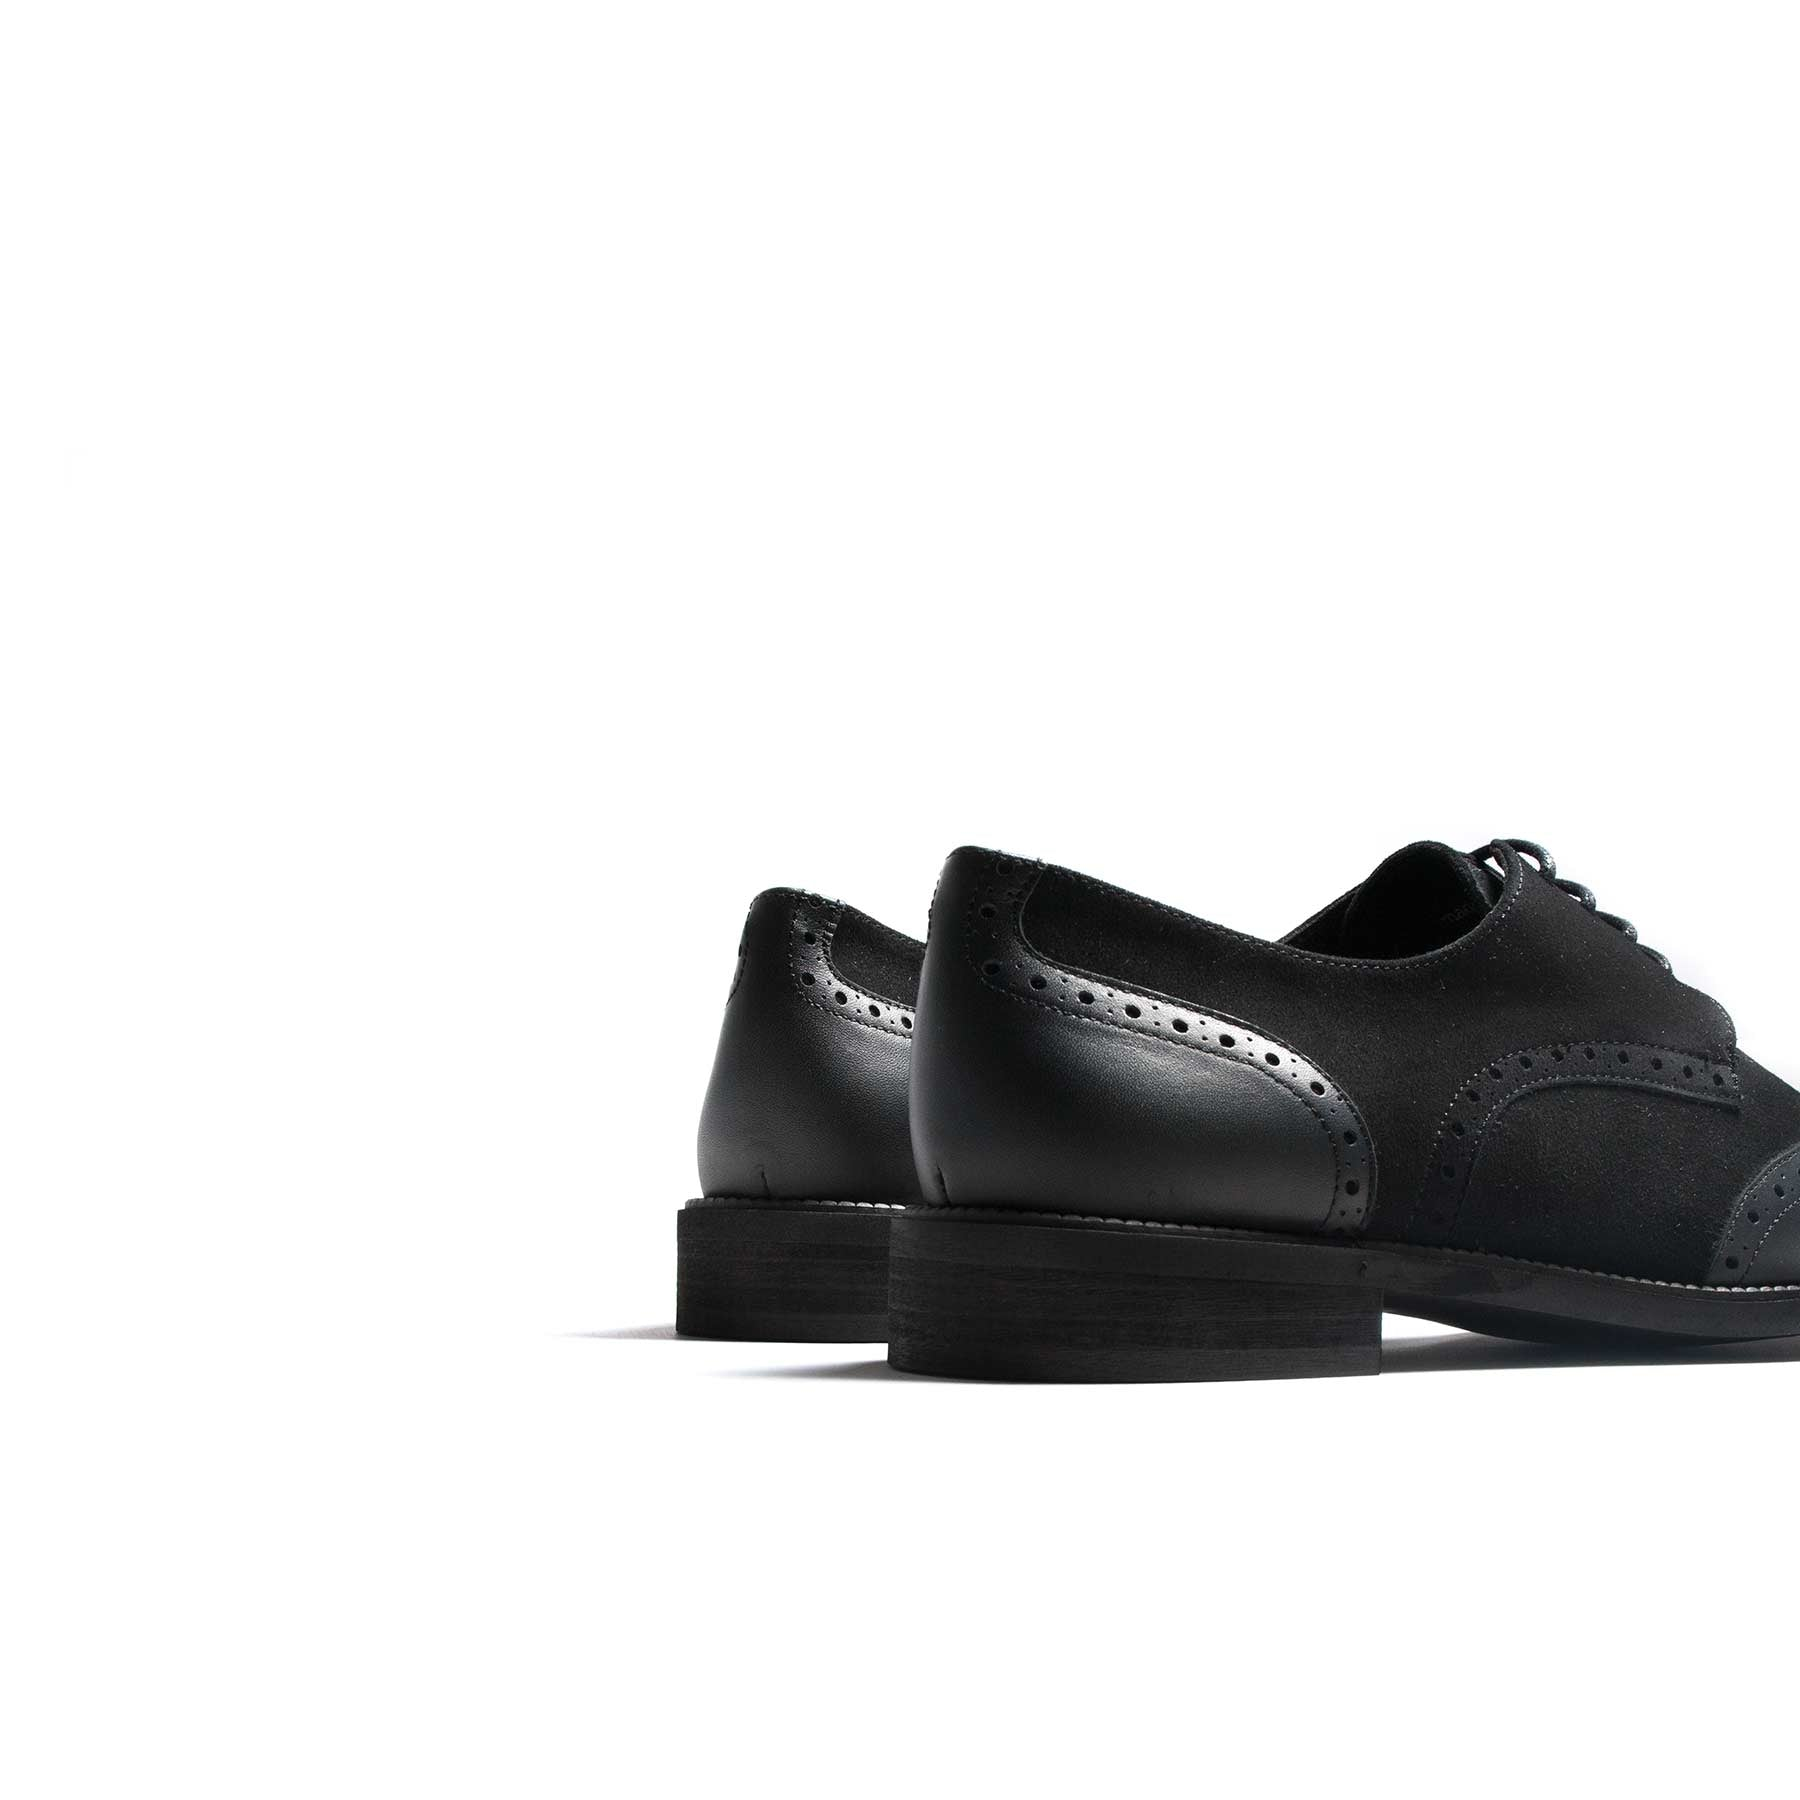 Murphy Black Leather & Suede